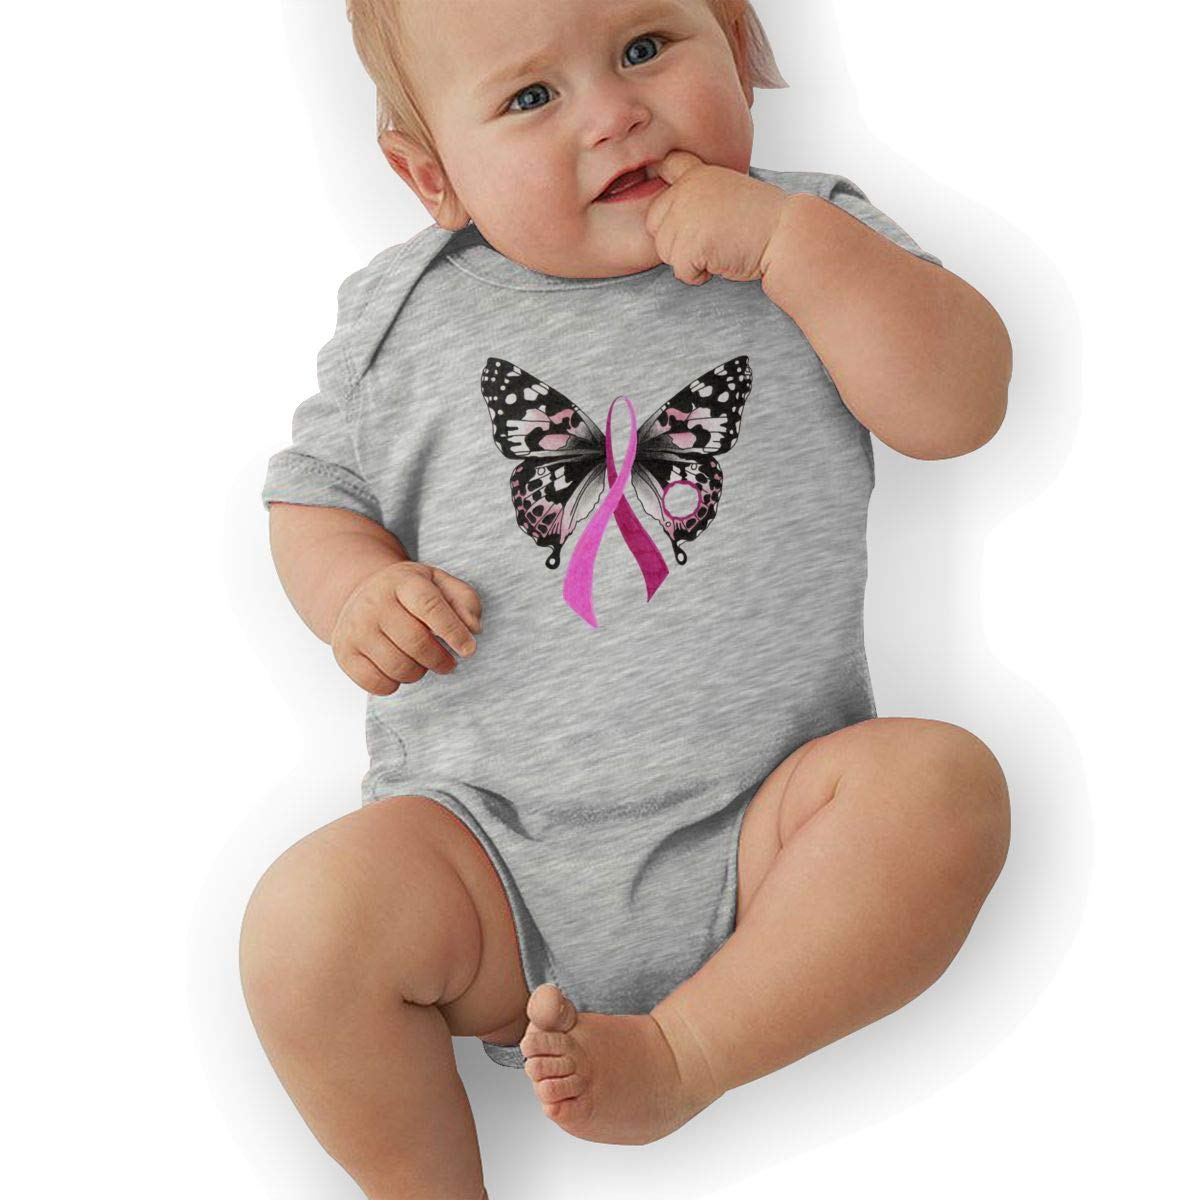 Bodysuits Clothes Onesies Jumpsuits Outfits Black Butterfly Breast Cancer Awareness Support Ribbon Baby Pajamas